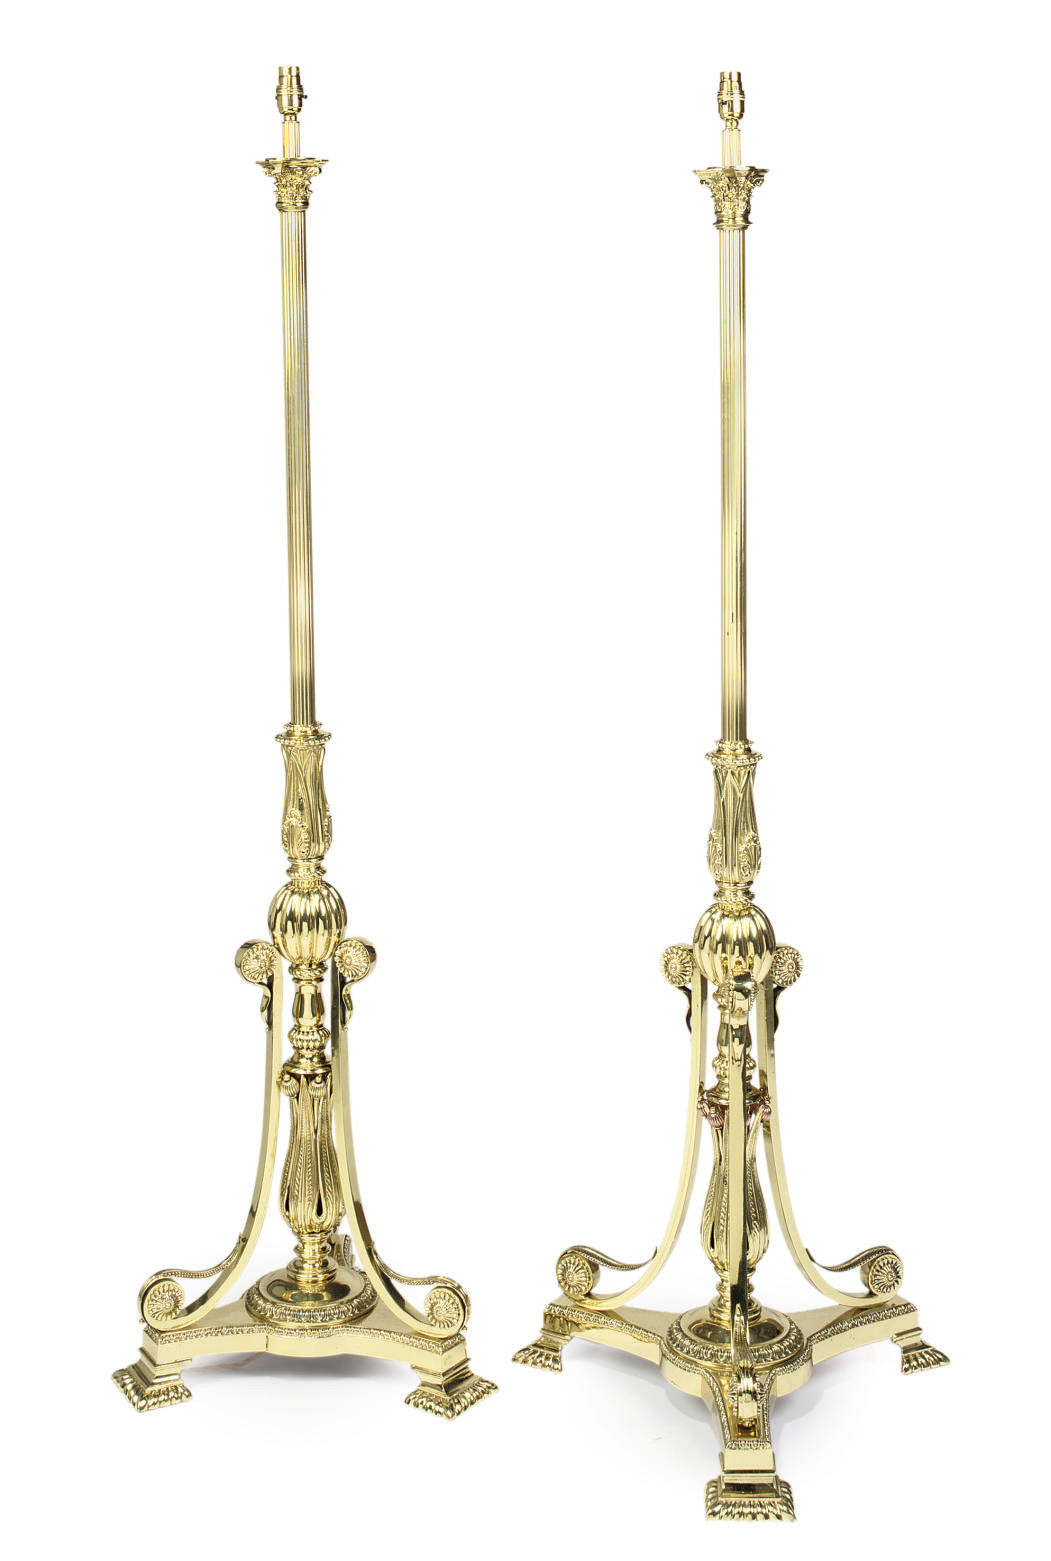 A PAIR OF LATE VICTORIAN BRASS